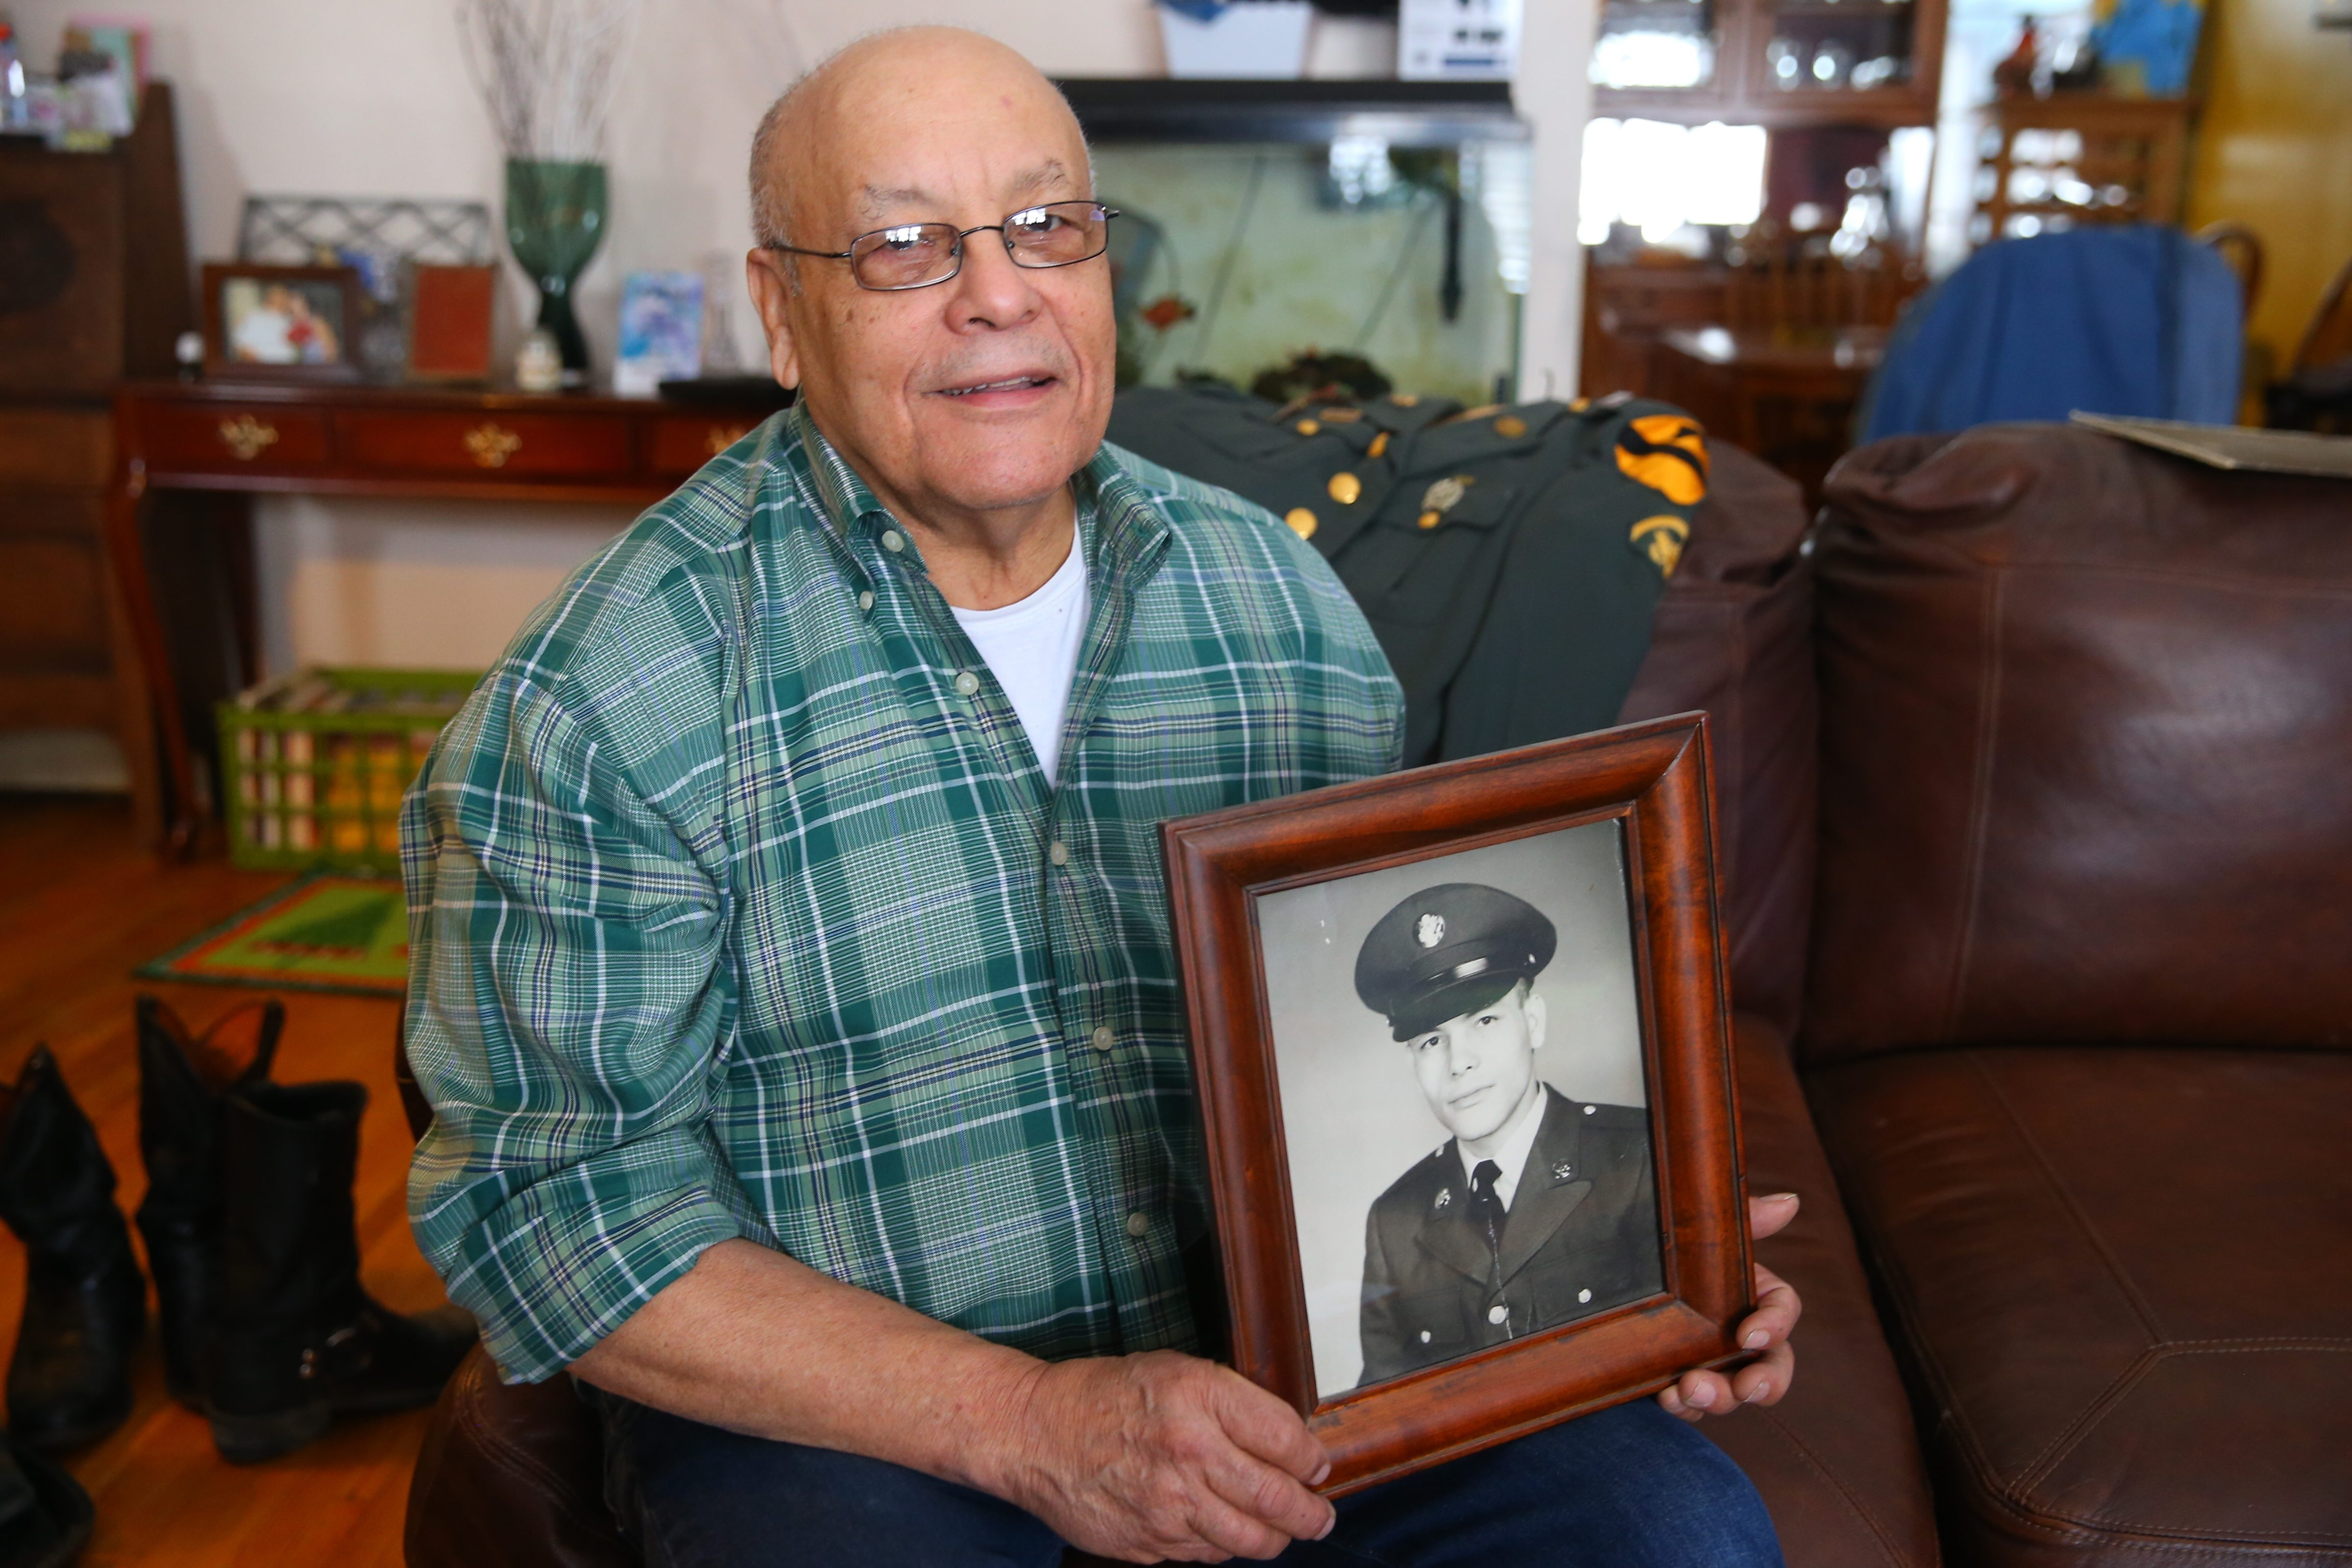 Roberto Becerril recalls that as a medic in Vietnam, the hospi- tal tent became a target of mortar rounds and small-arms fire.